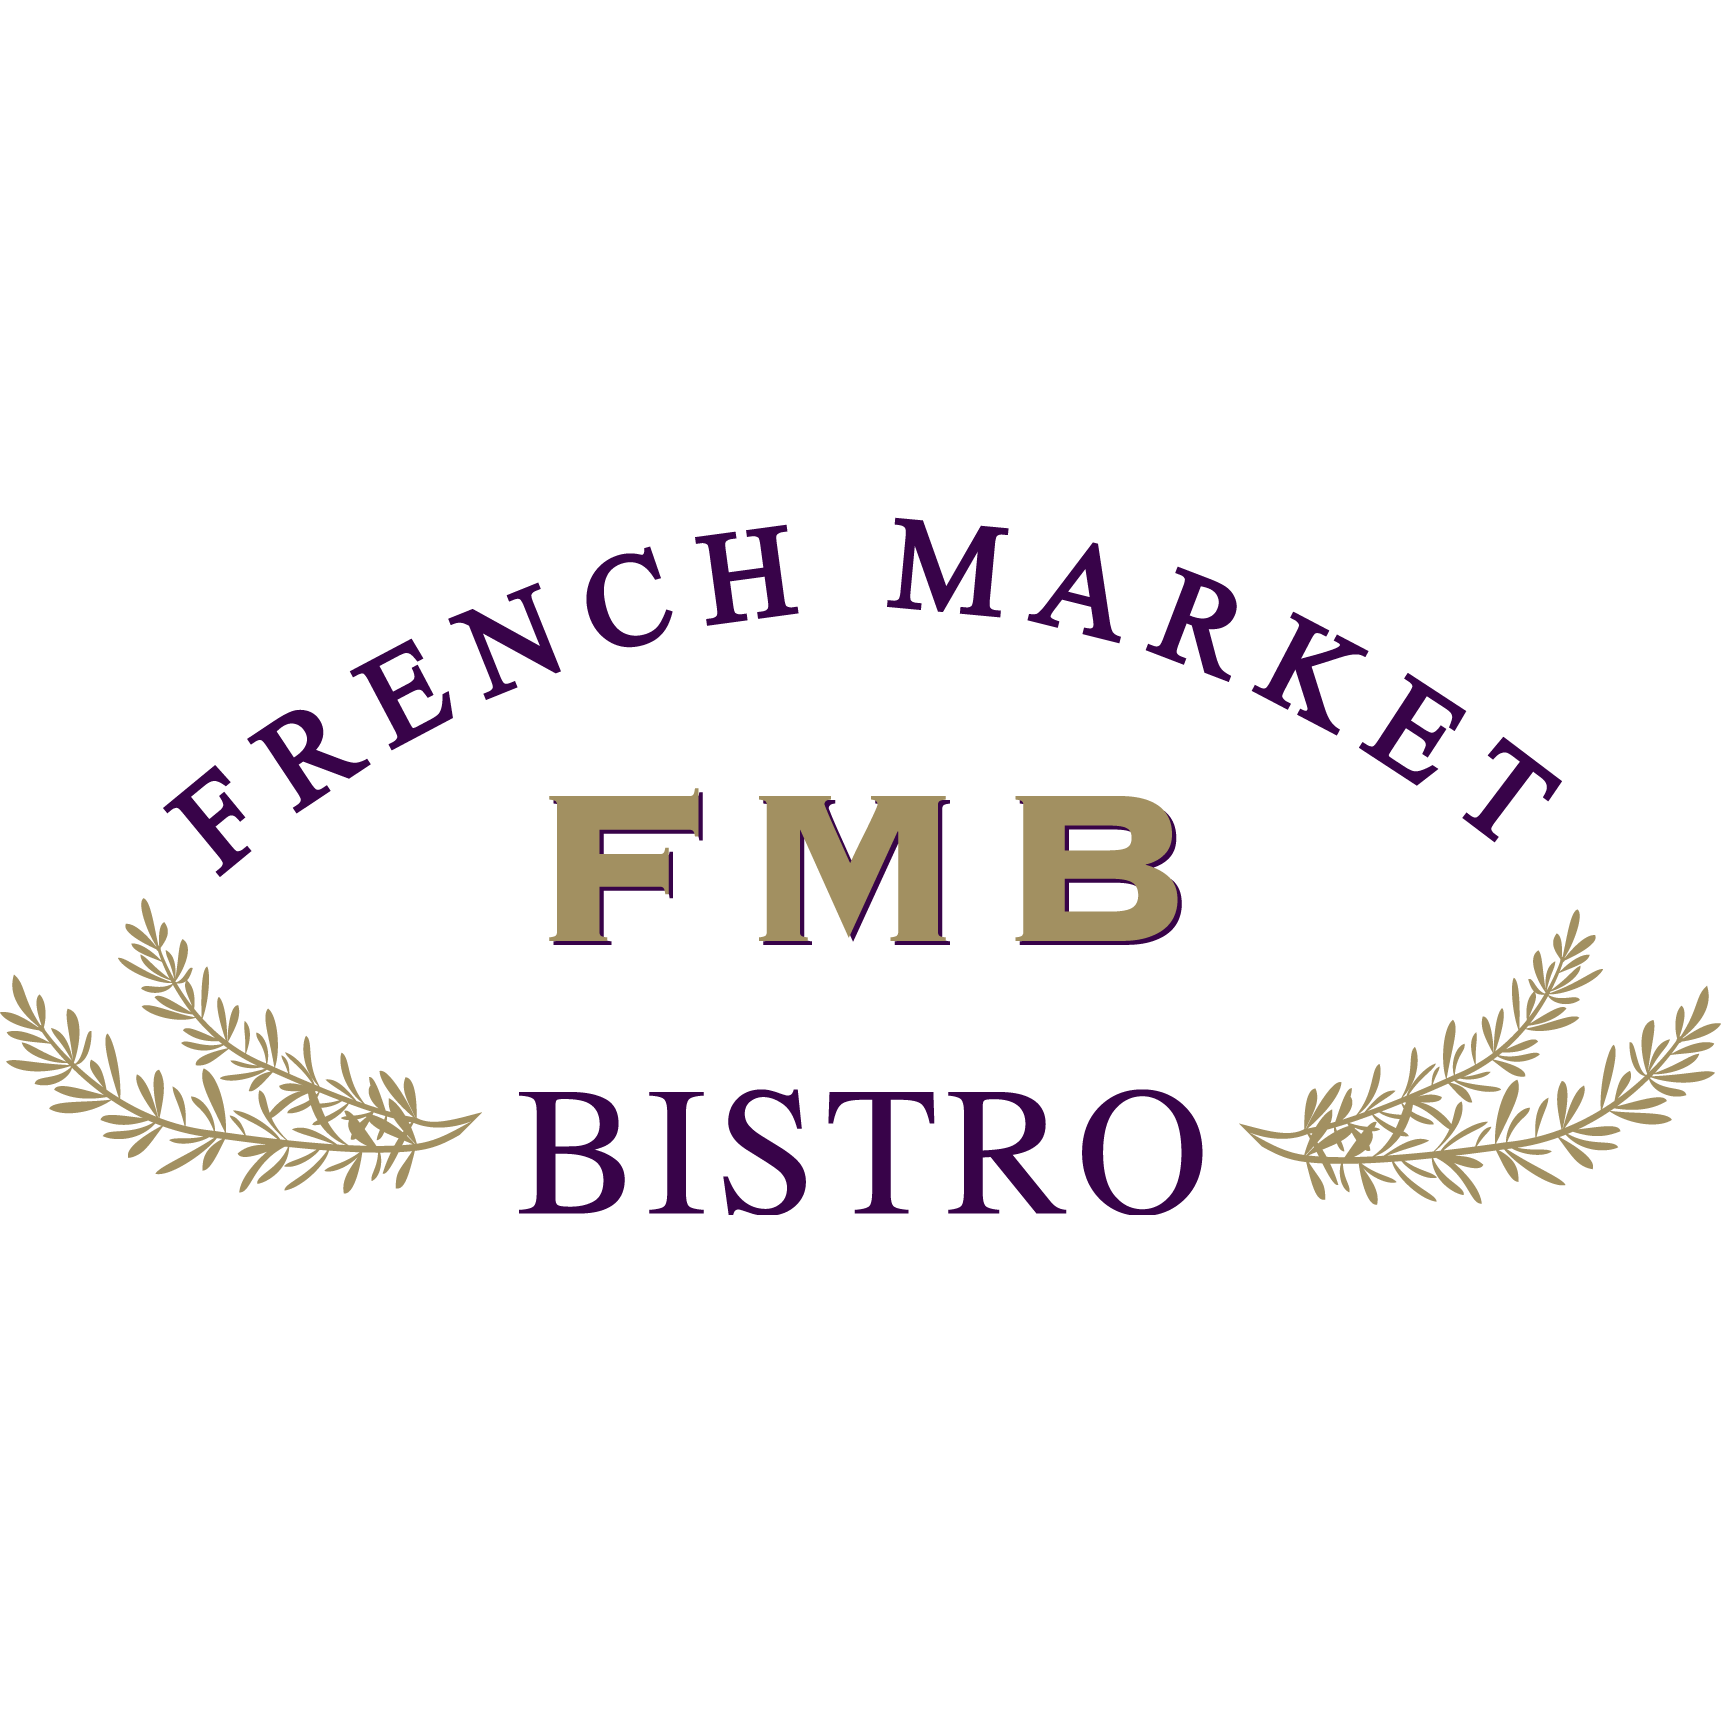 image of the French Market Bistro